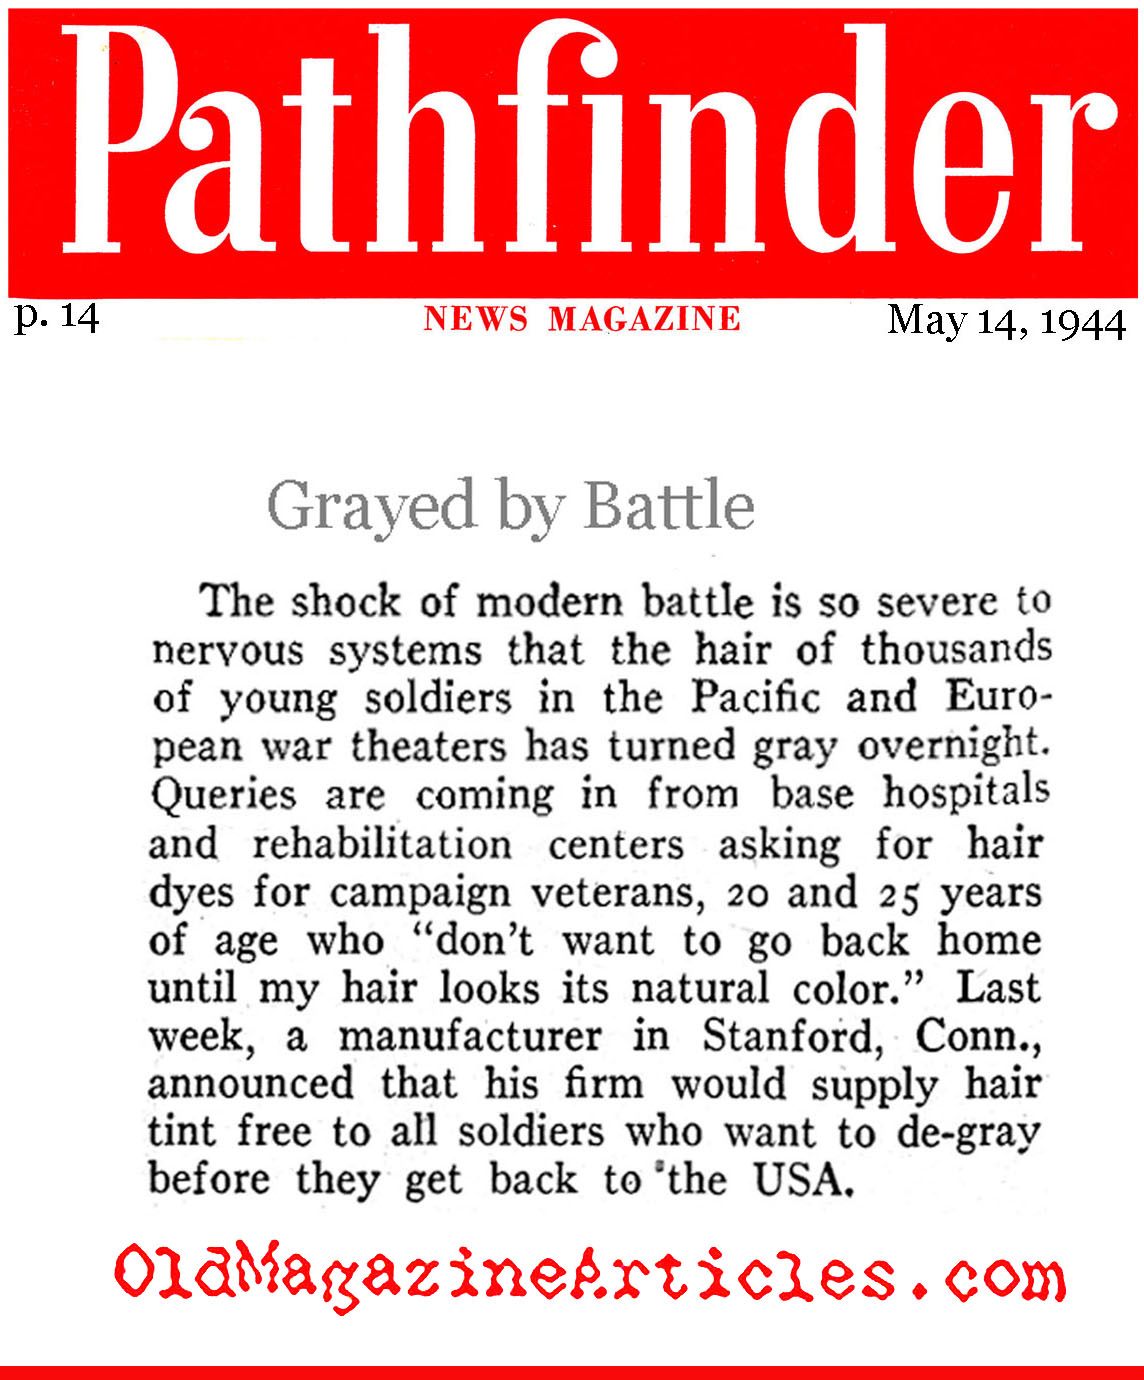 The Brutality of Combat (Pathfinder Magazine, 1944)